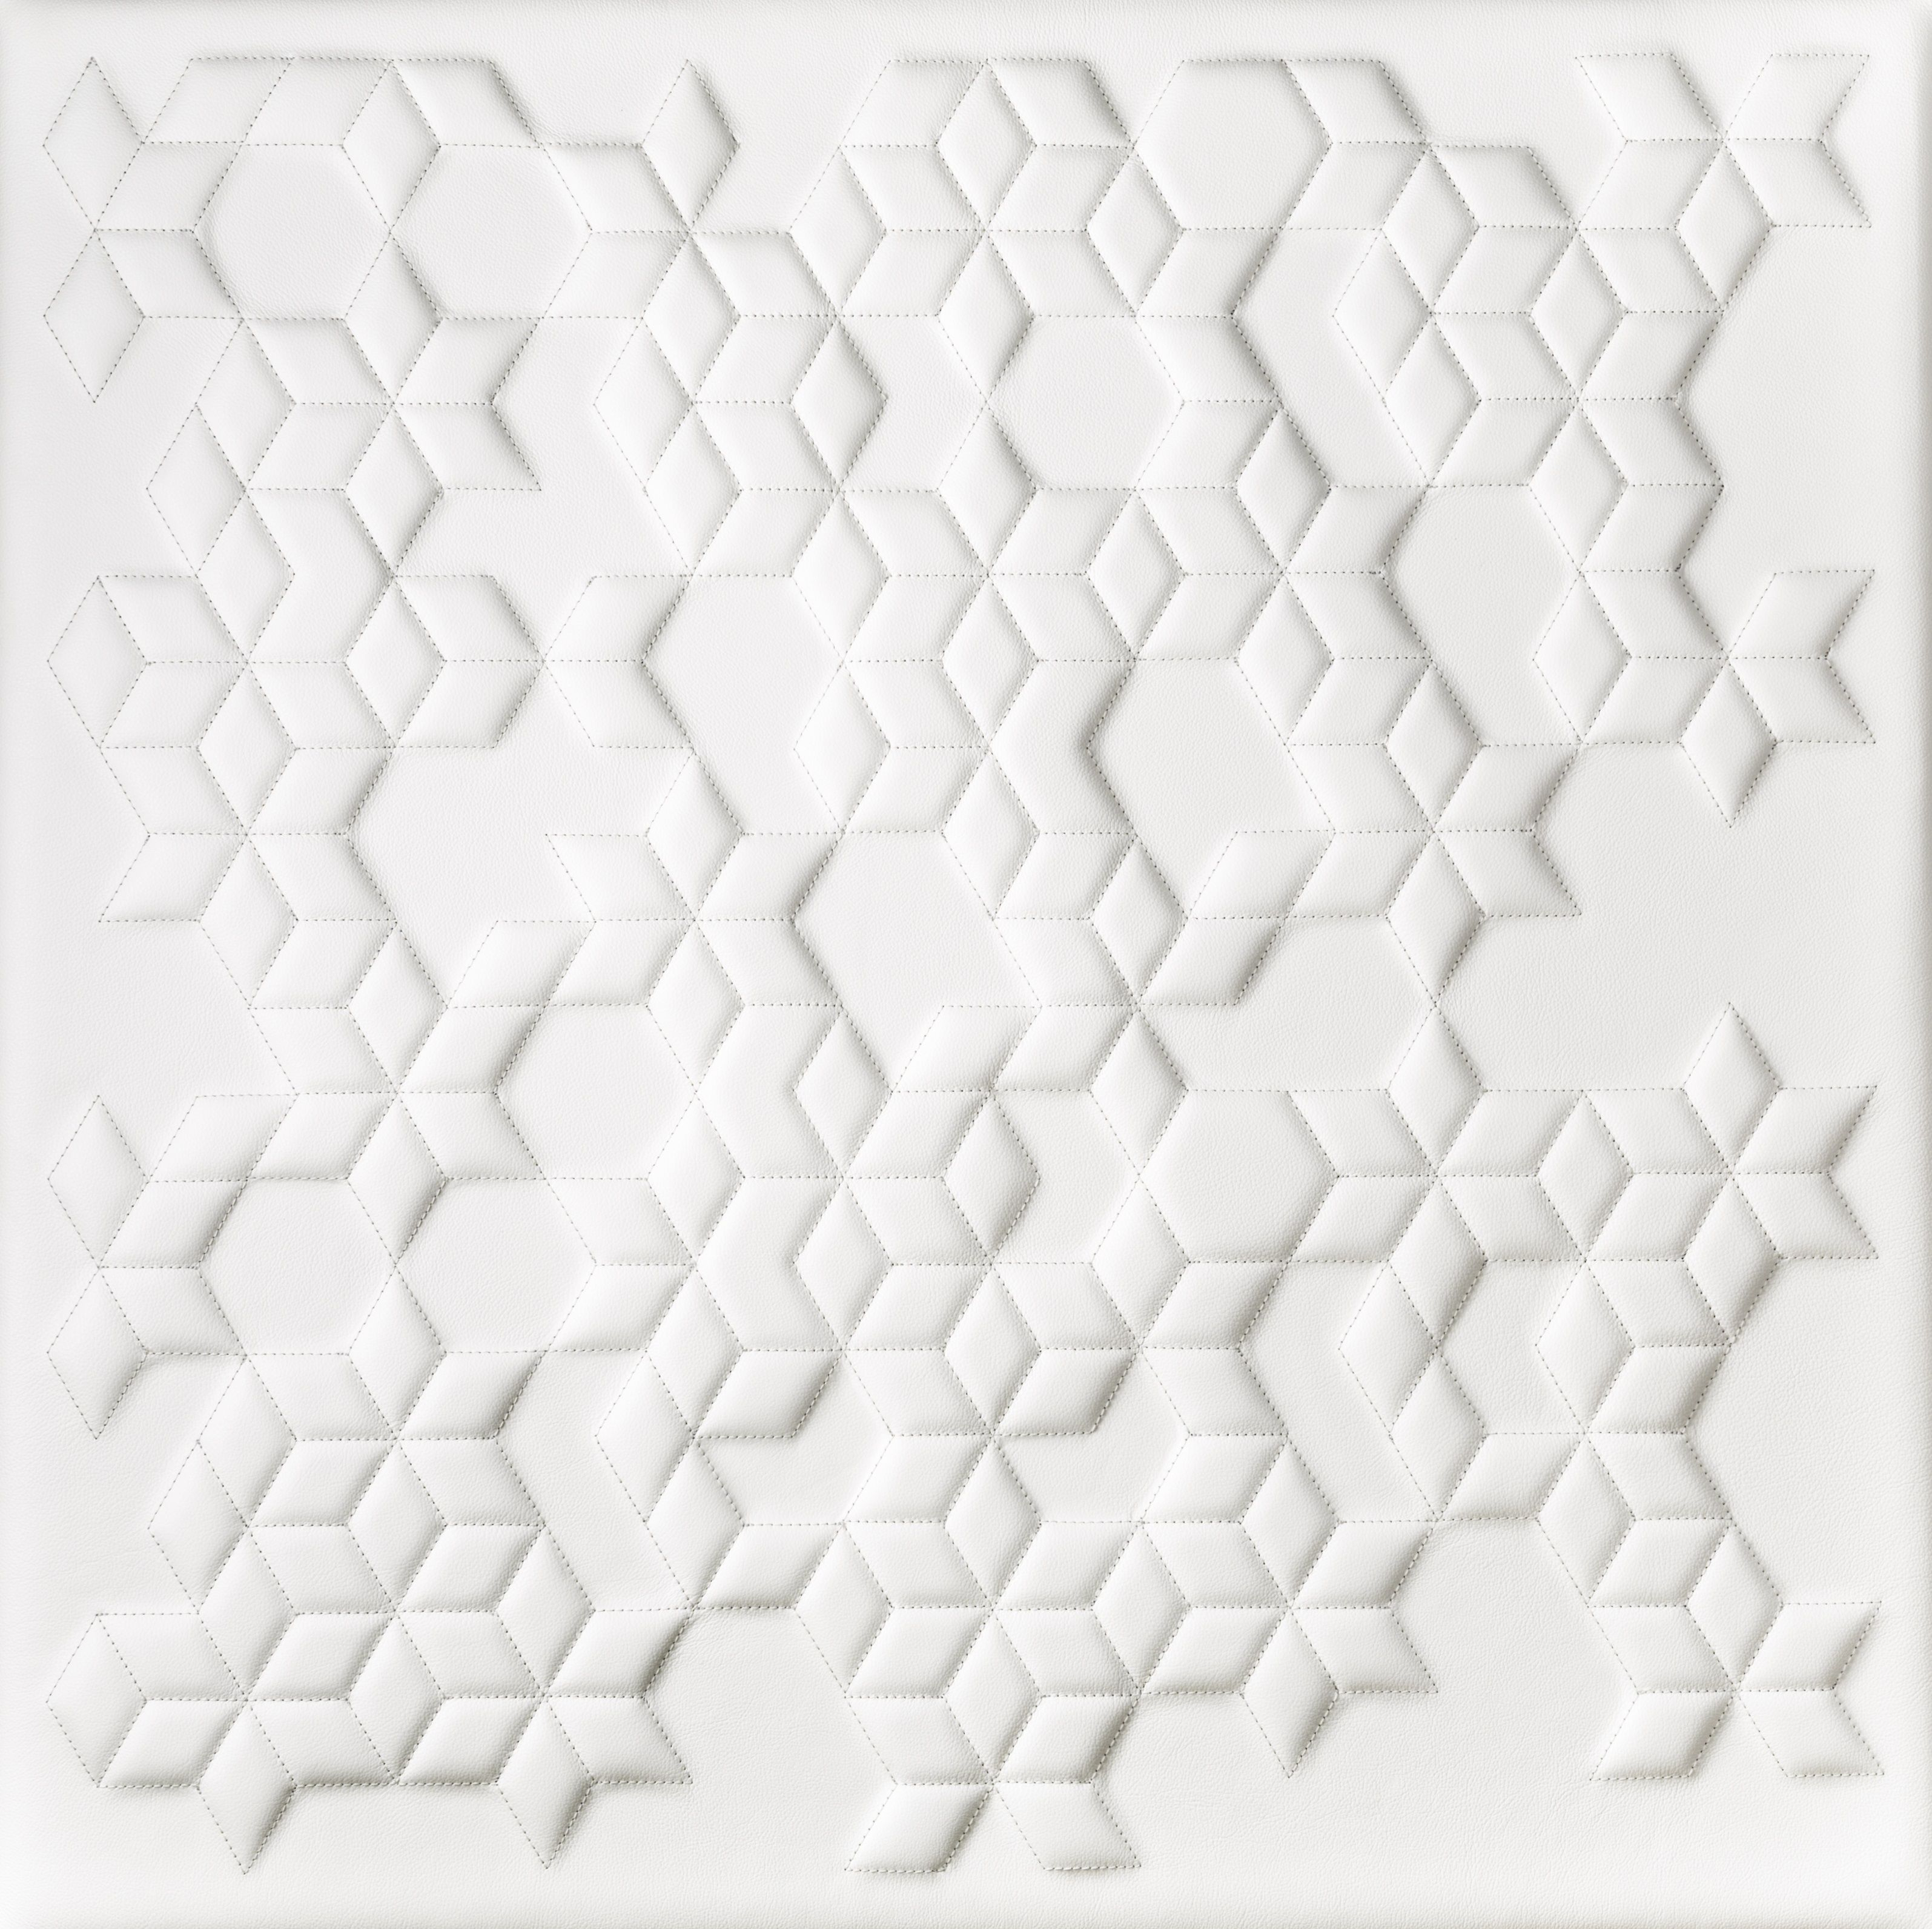 3d Leather Wall Panel In A Quilted Diamond Design By Bms